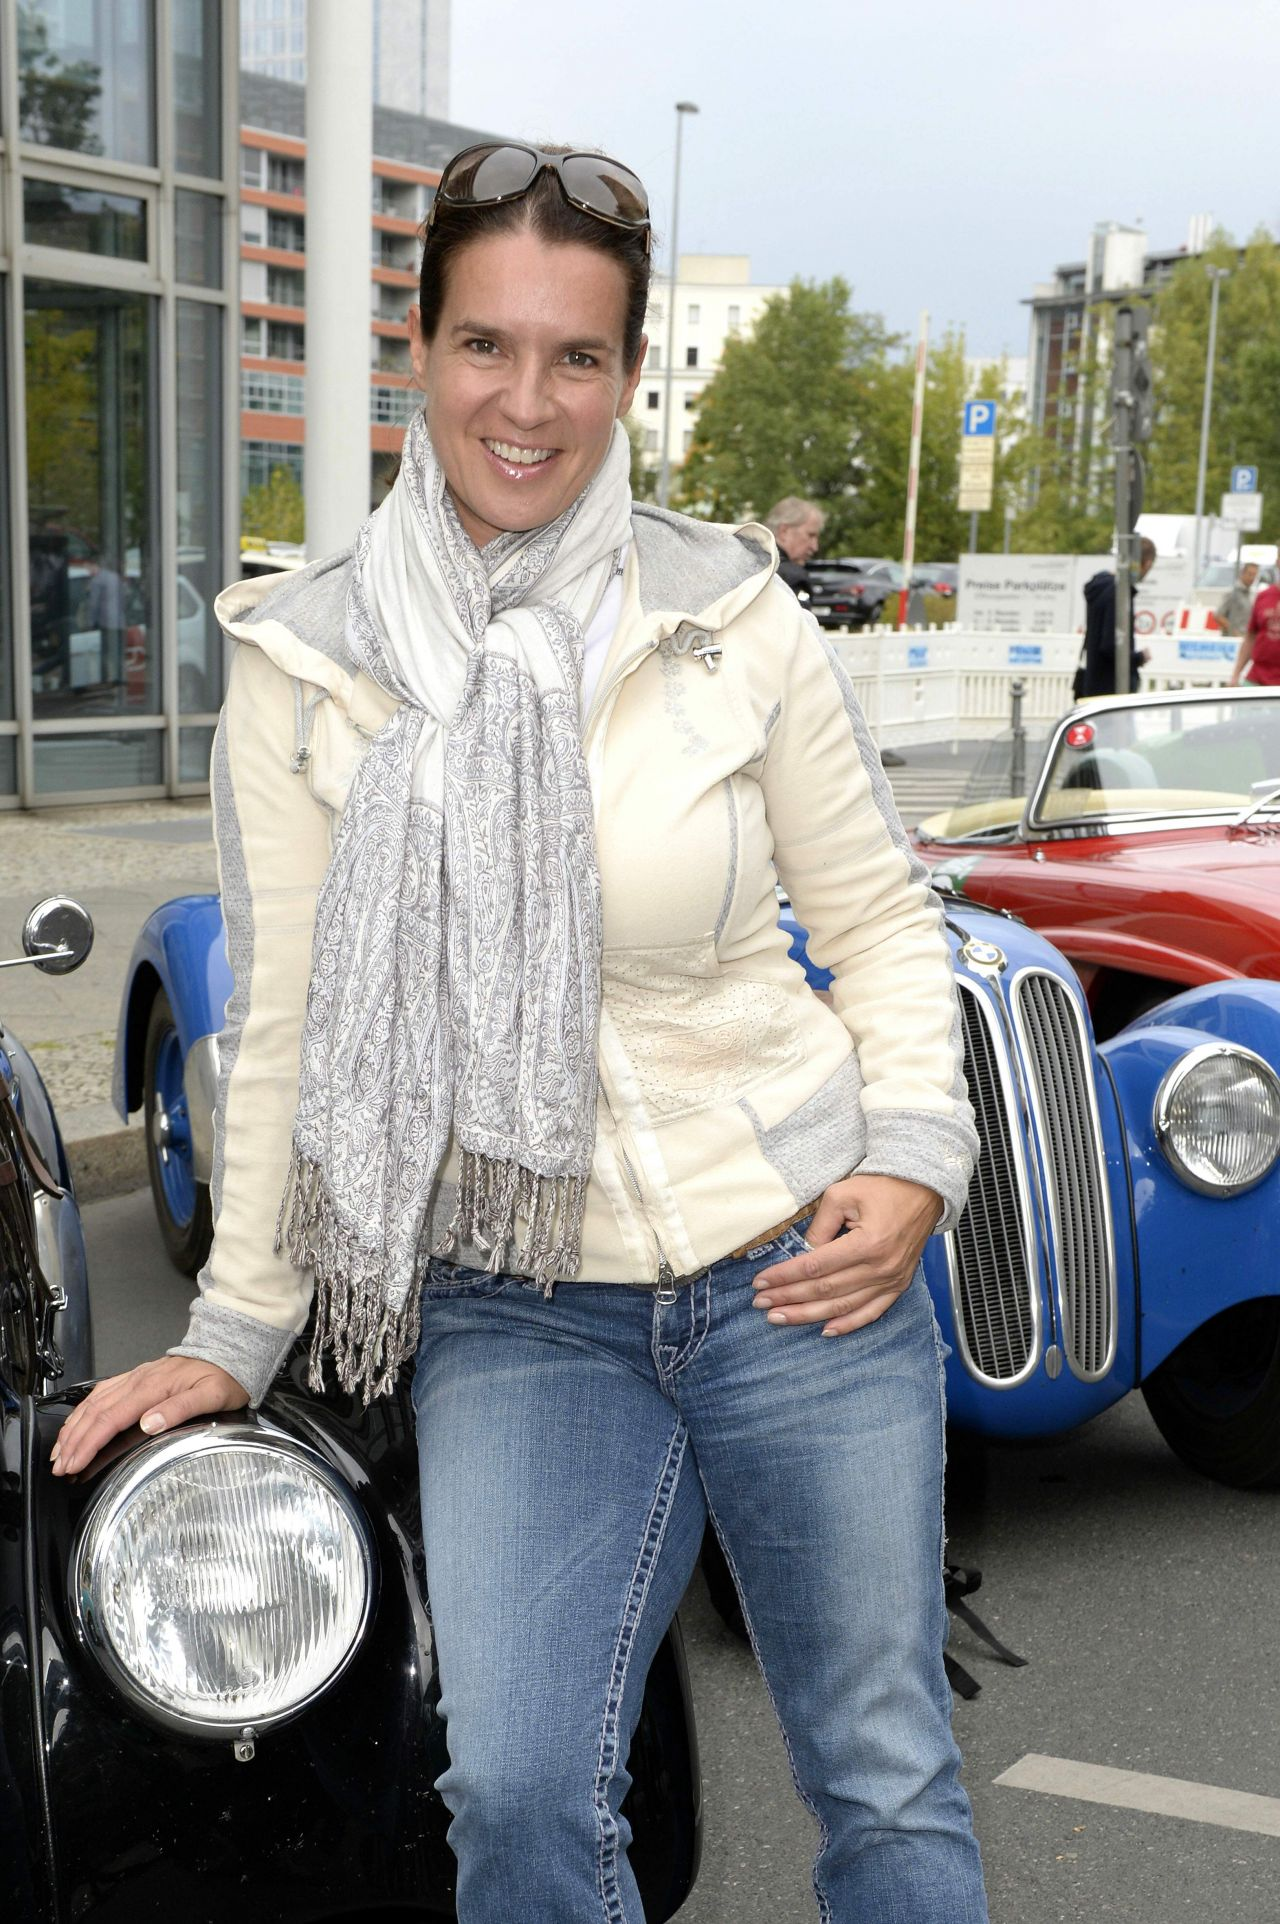 Katarina Witt At the Finish of the Classic Rally Hamburg-Berlin 2014